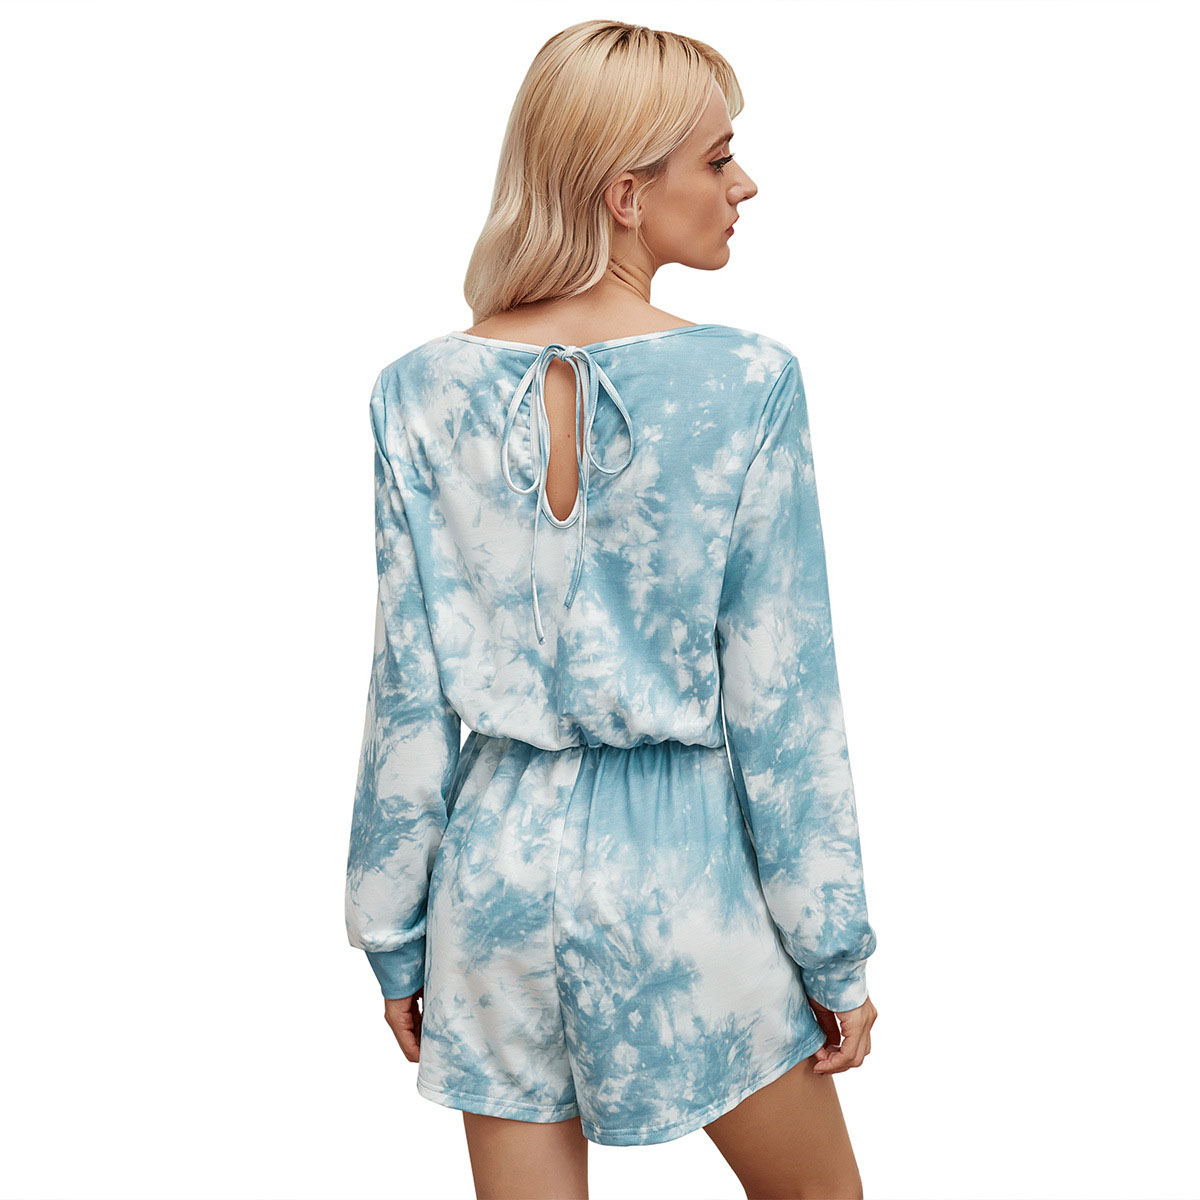 2-piece tie-dye long-sleeved top +  shorts loungewear